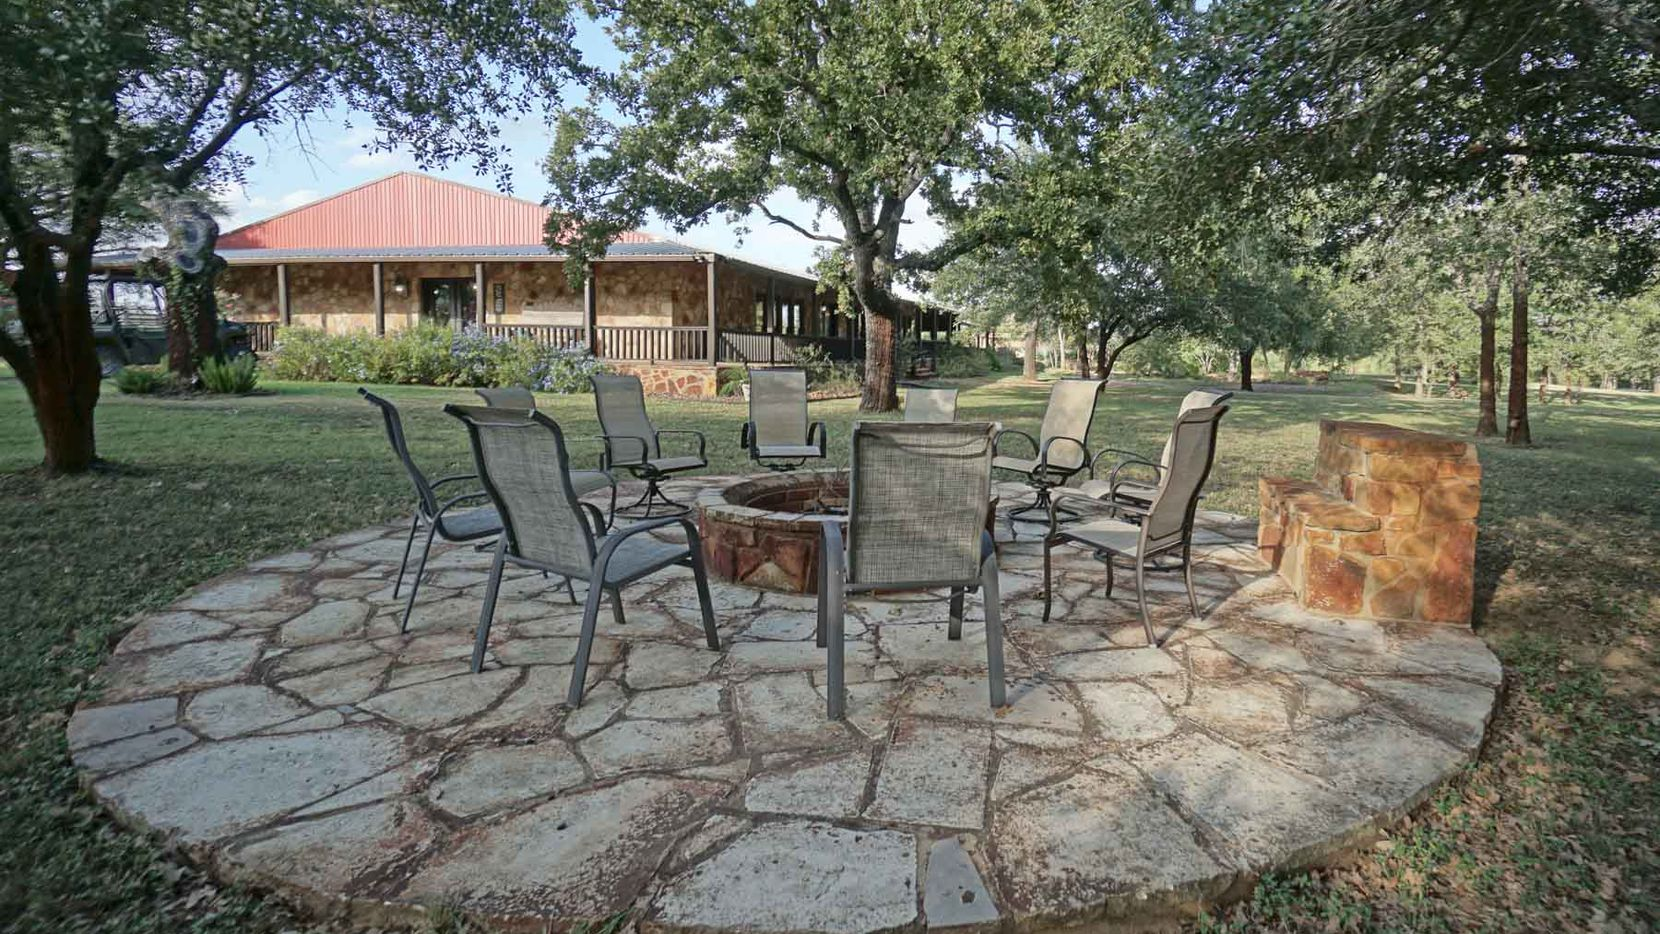 Tje ranch between Austin and Houston has 20 guest suites.